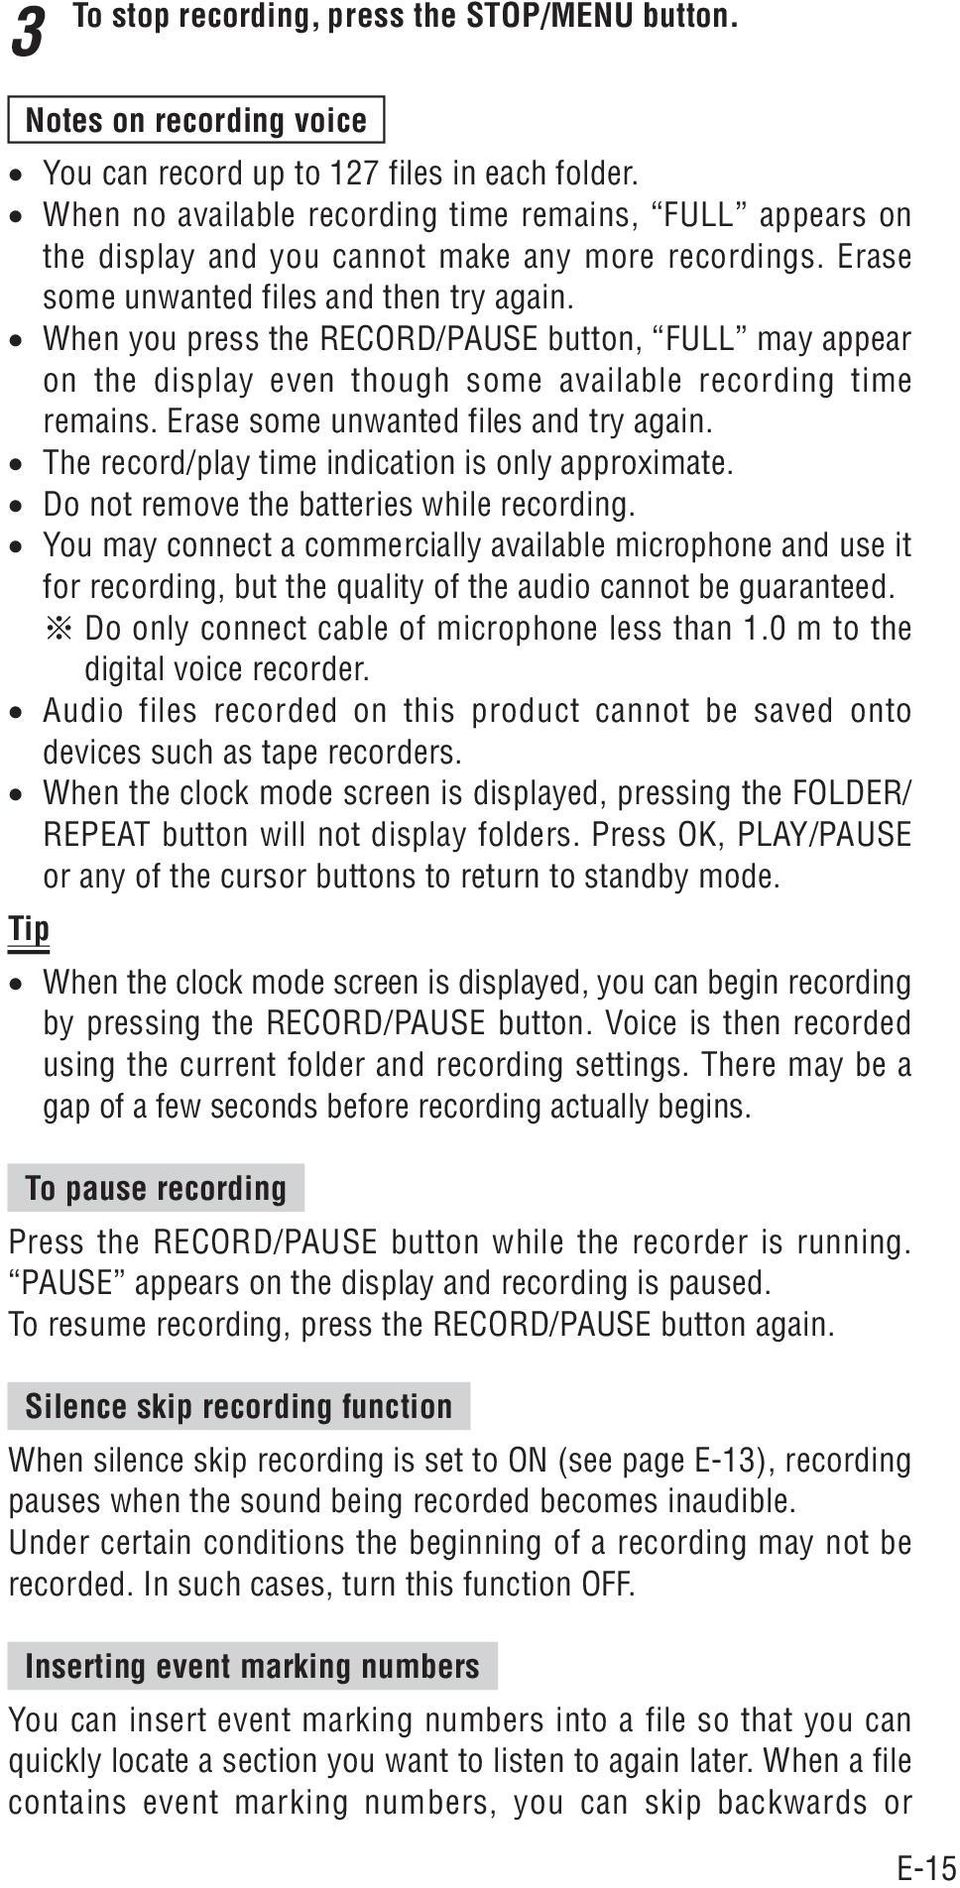 When you press the RECORD/PAUSE button, FULL may appear on the display even though some available recording time remains. Erase some unwanted files and try again.